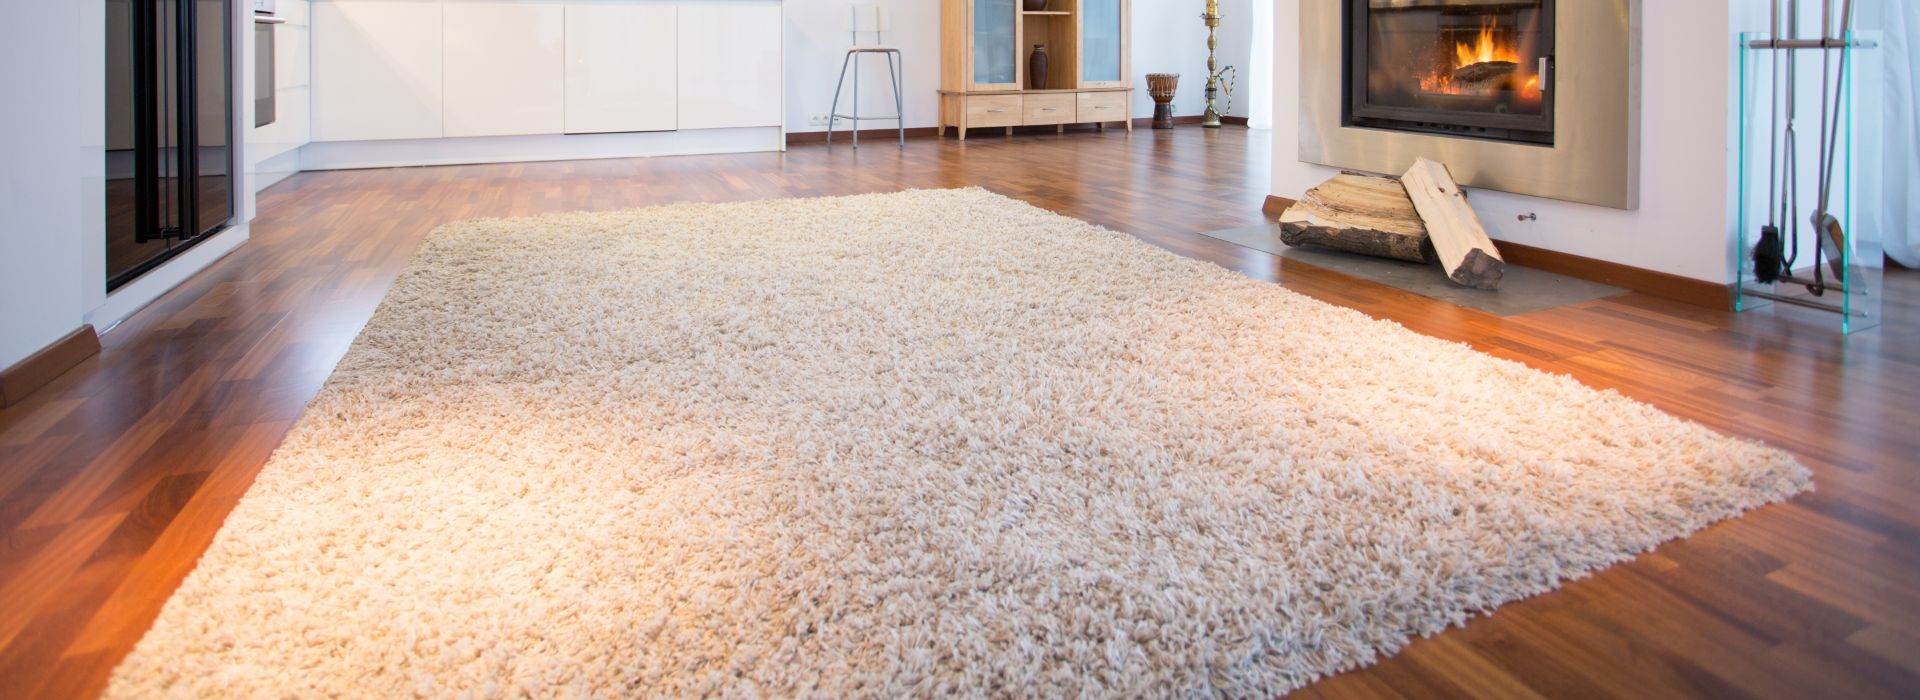 best carpet cleaning company belfast